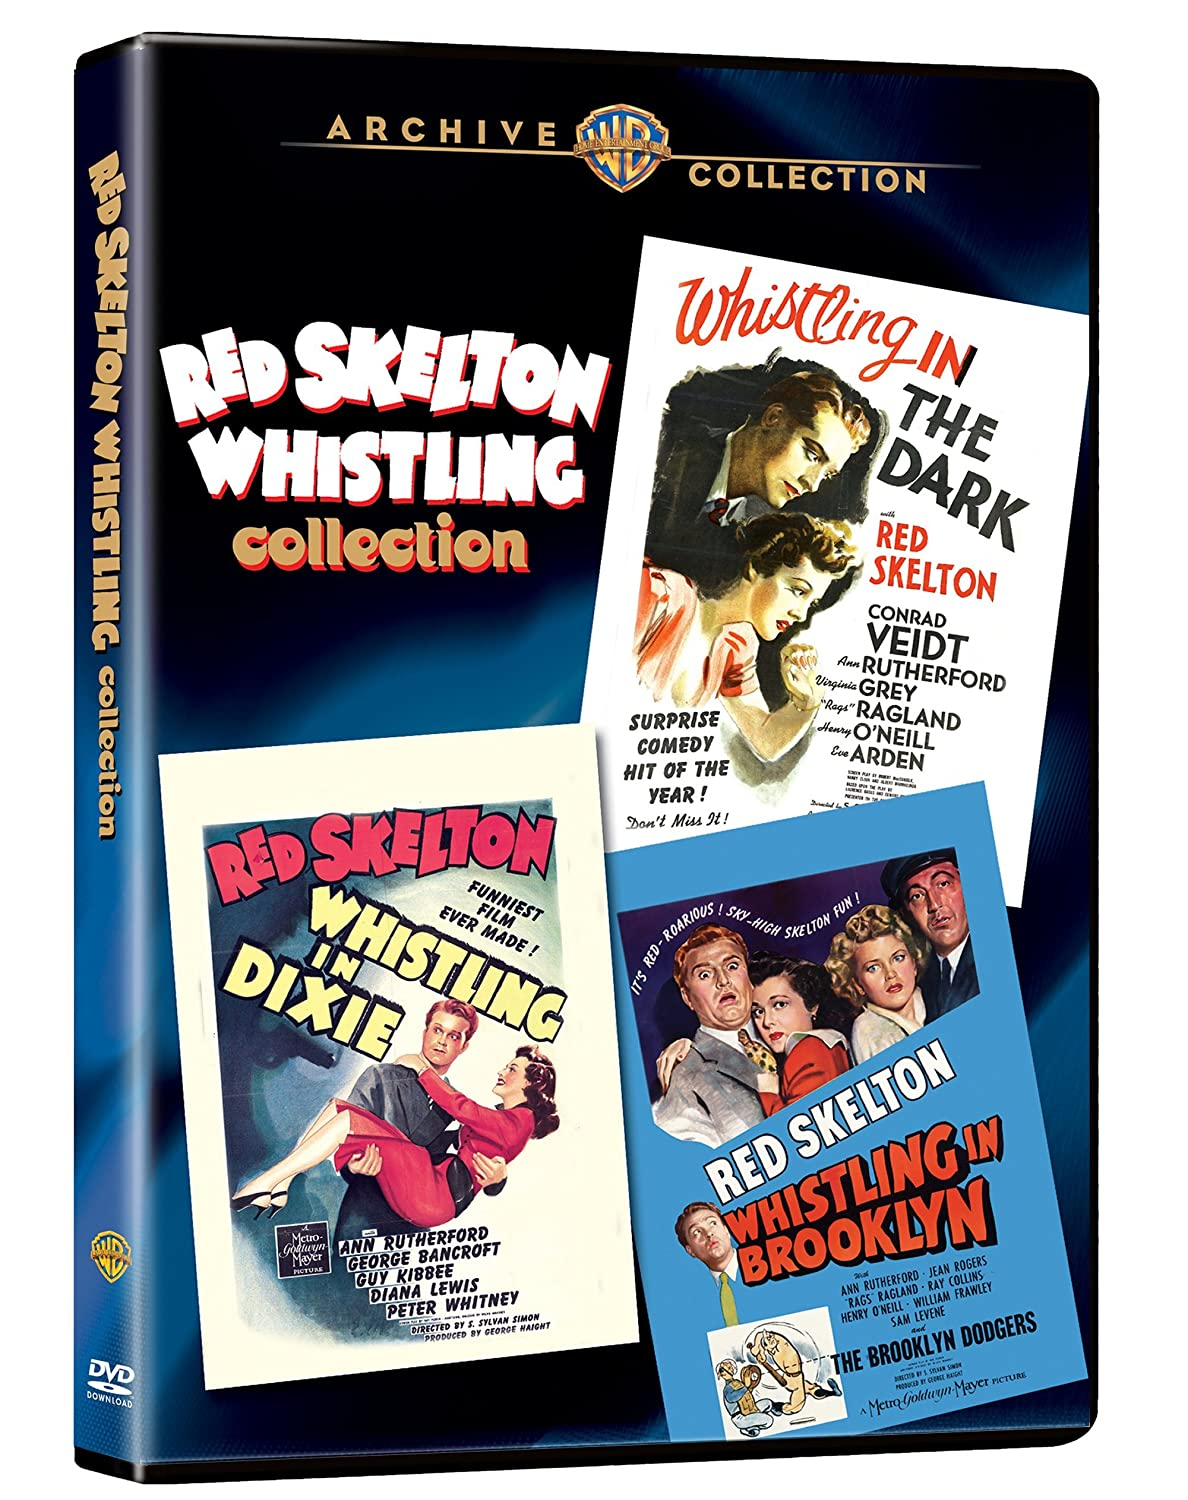 Amazon com: Red Skelton Whistling Collection (Whistling in